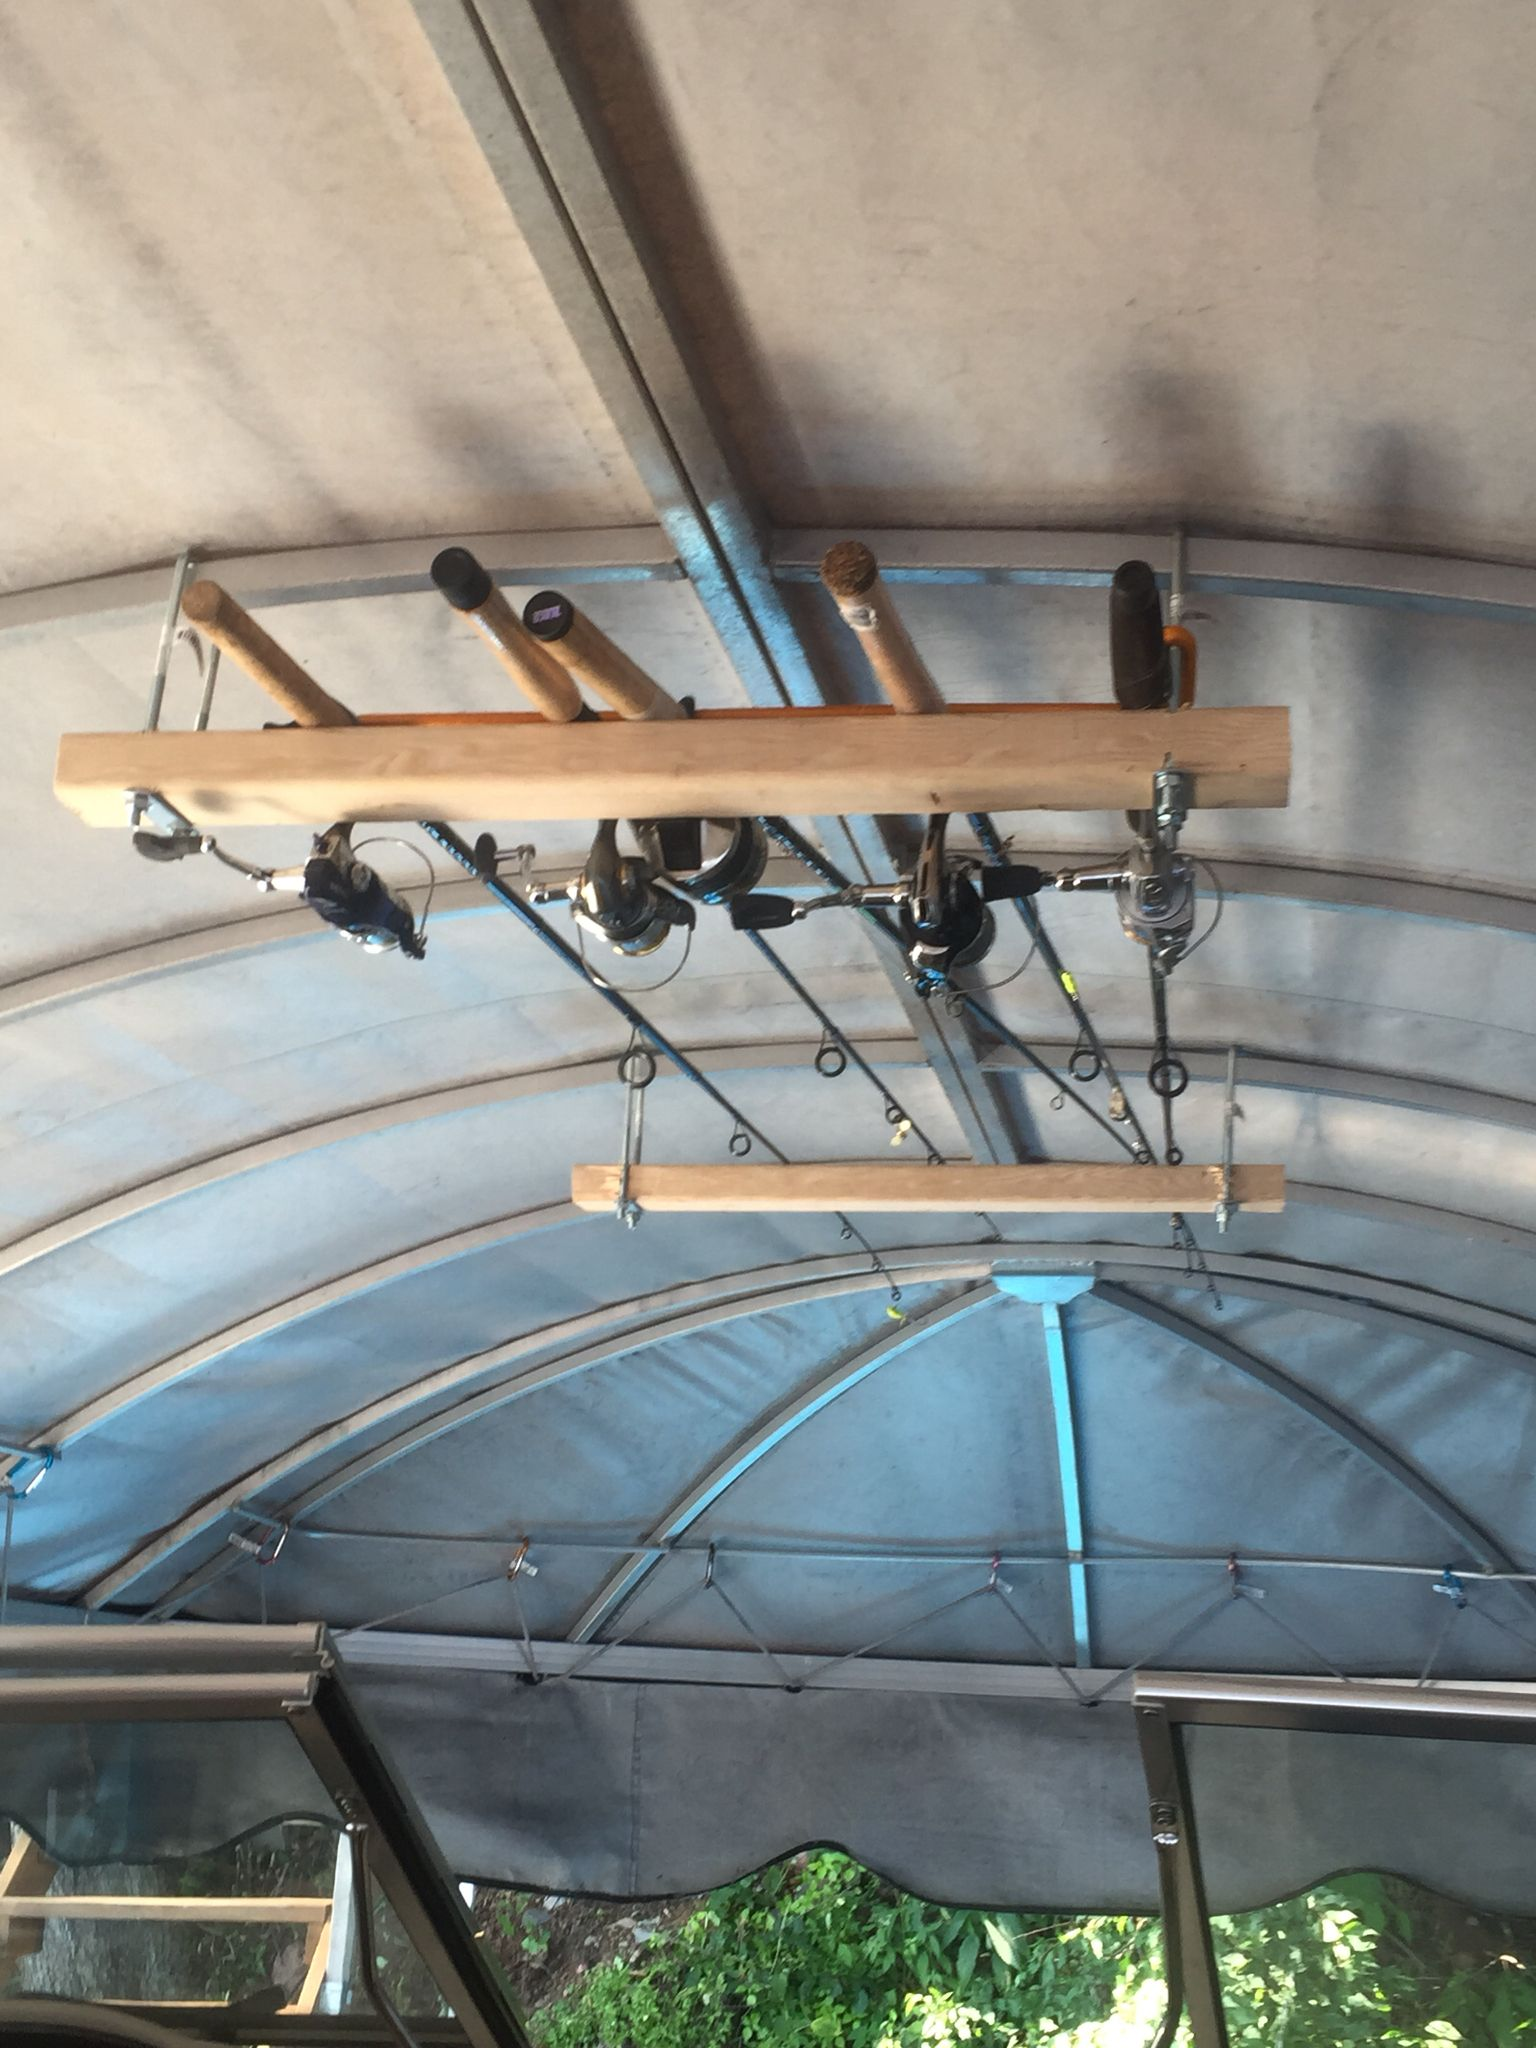 Fishing Pole Holders Under Boat Lift Canopy Storage And